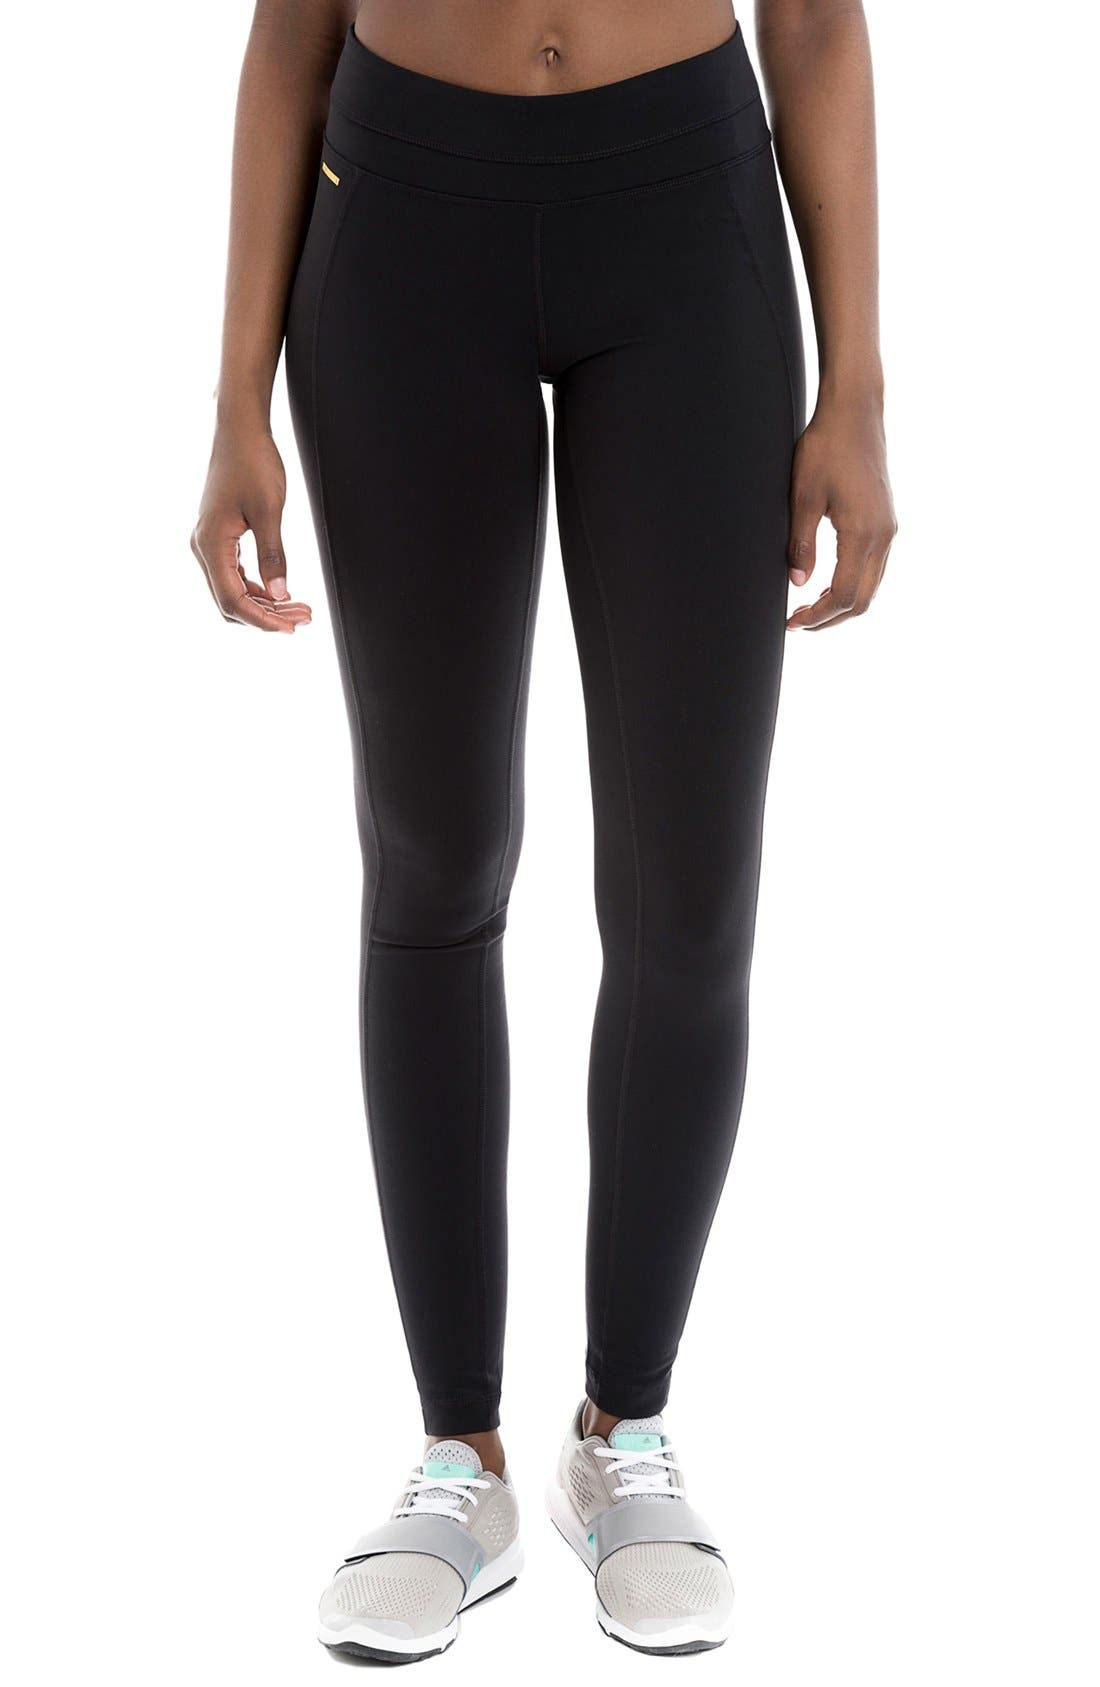 Lole 'Motion' Leggings